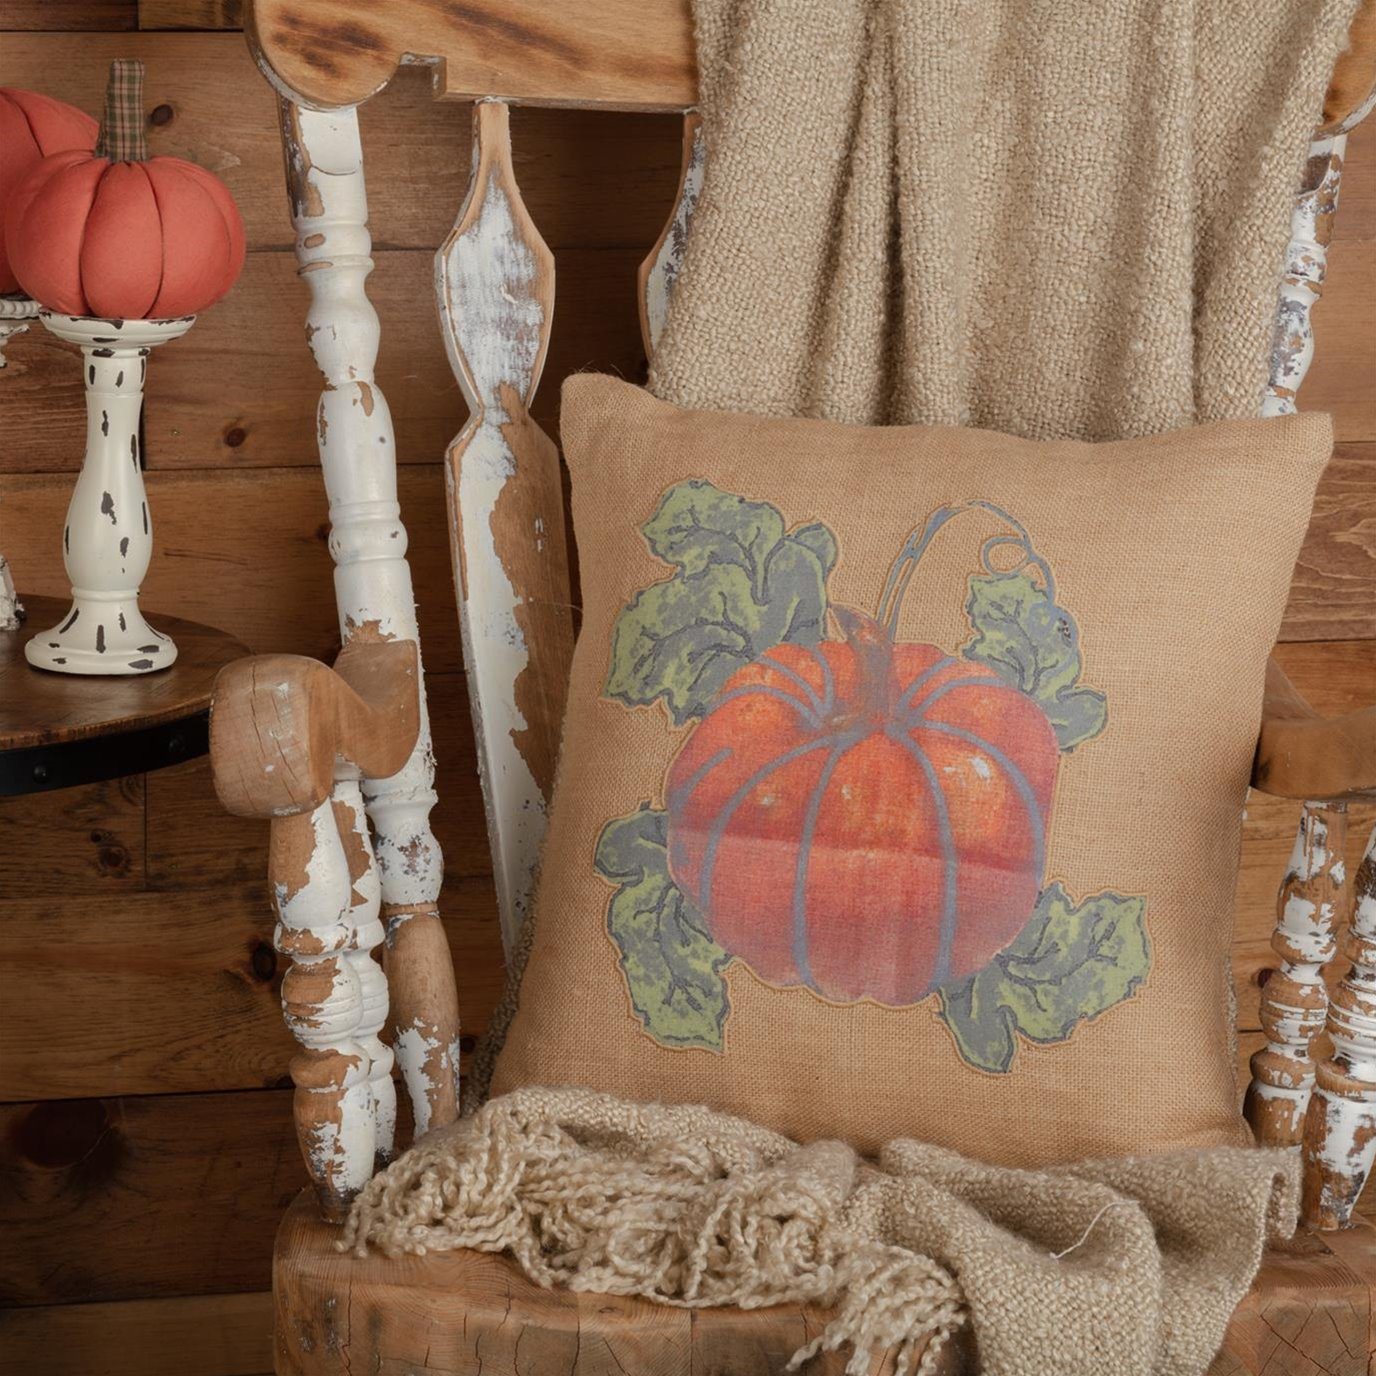 Jute Burlap Natural Harvest Garden Pumpkin Pillow 18x18